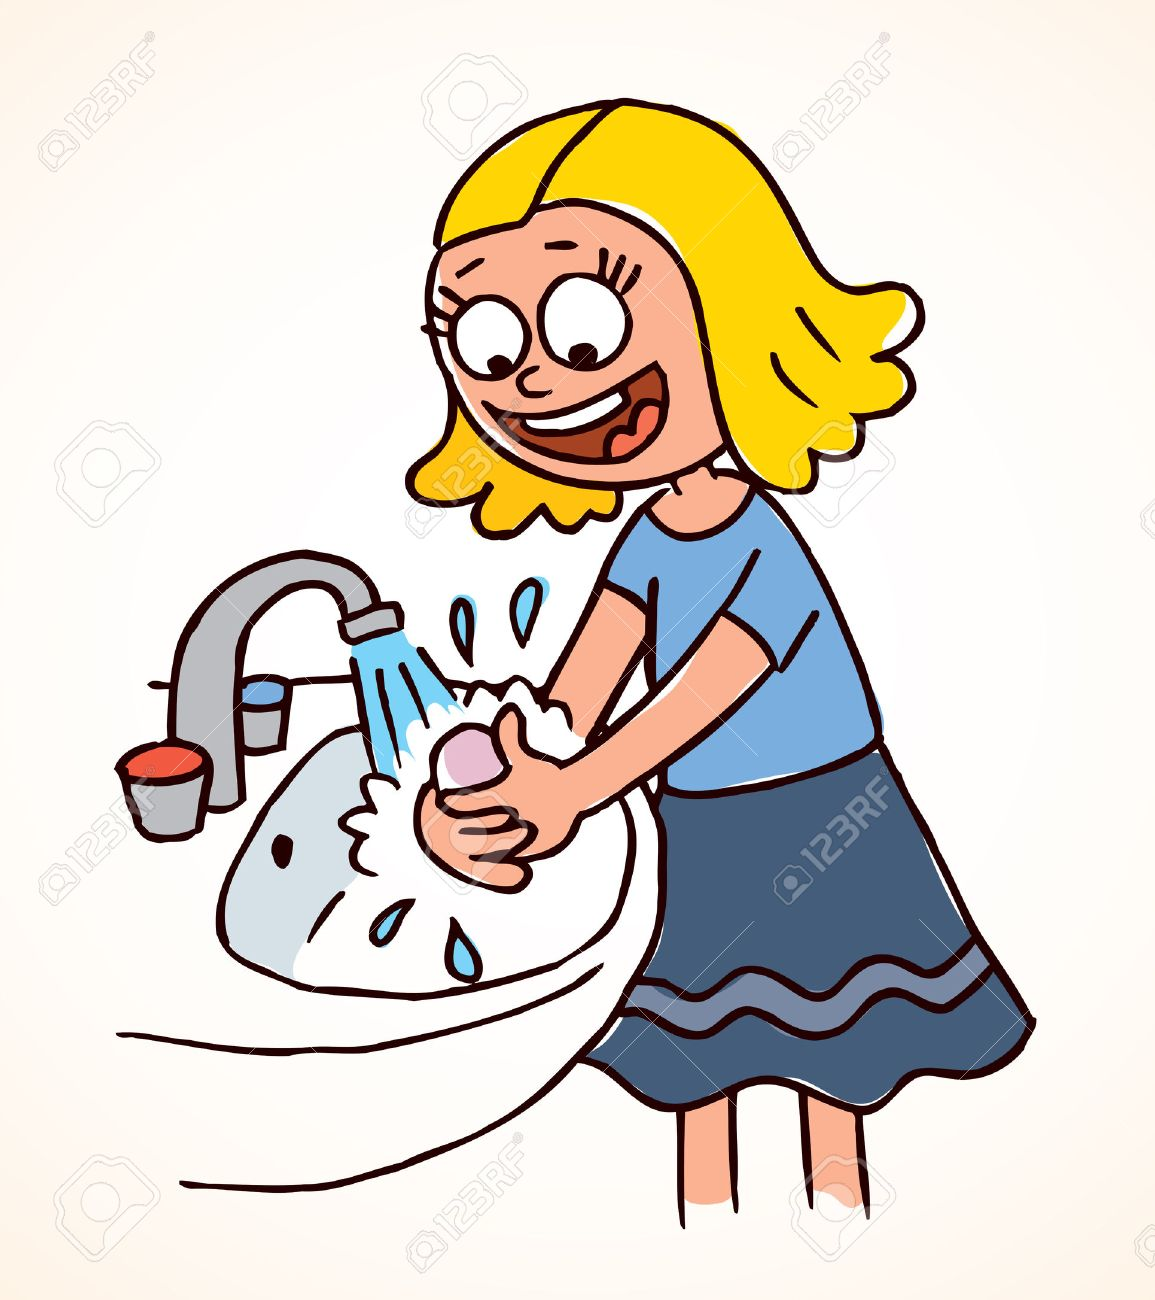 wash your hands clipart 5 clipart station rh clipartstation com wash hands clip art black and white washing hands clip art